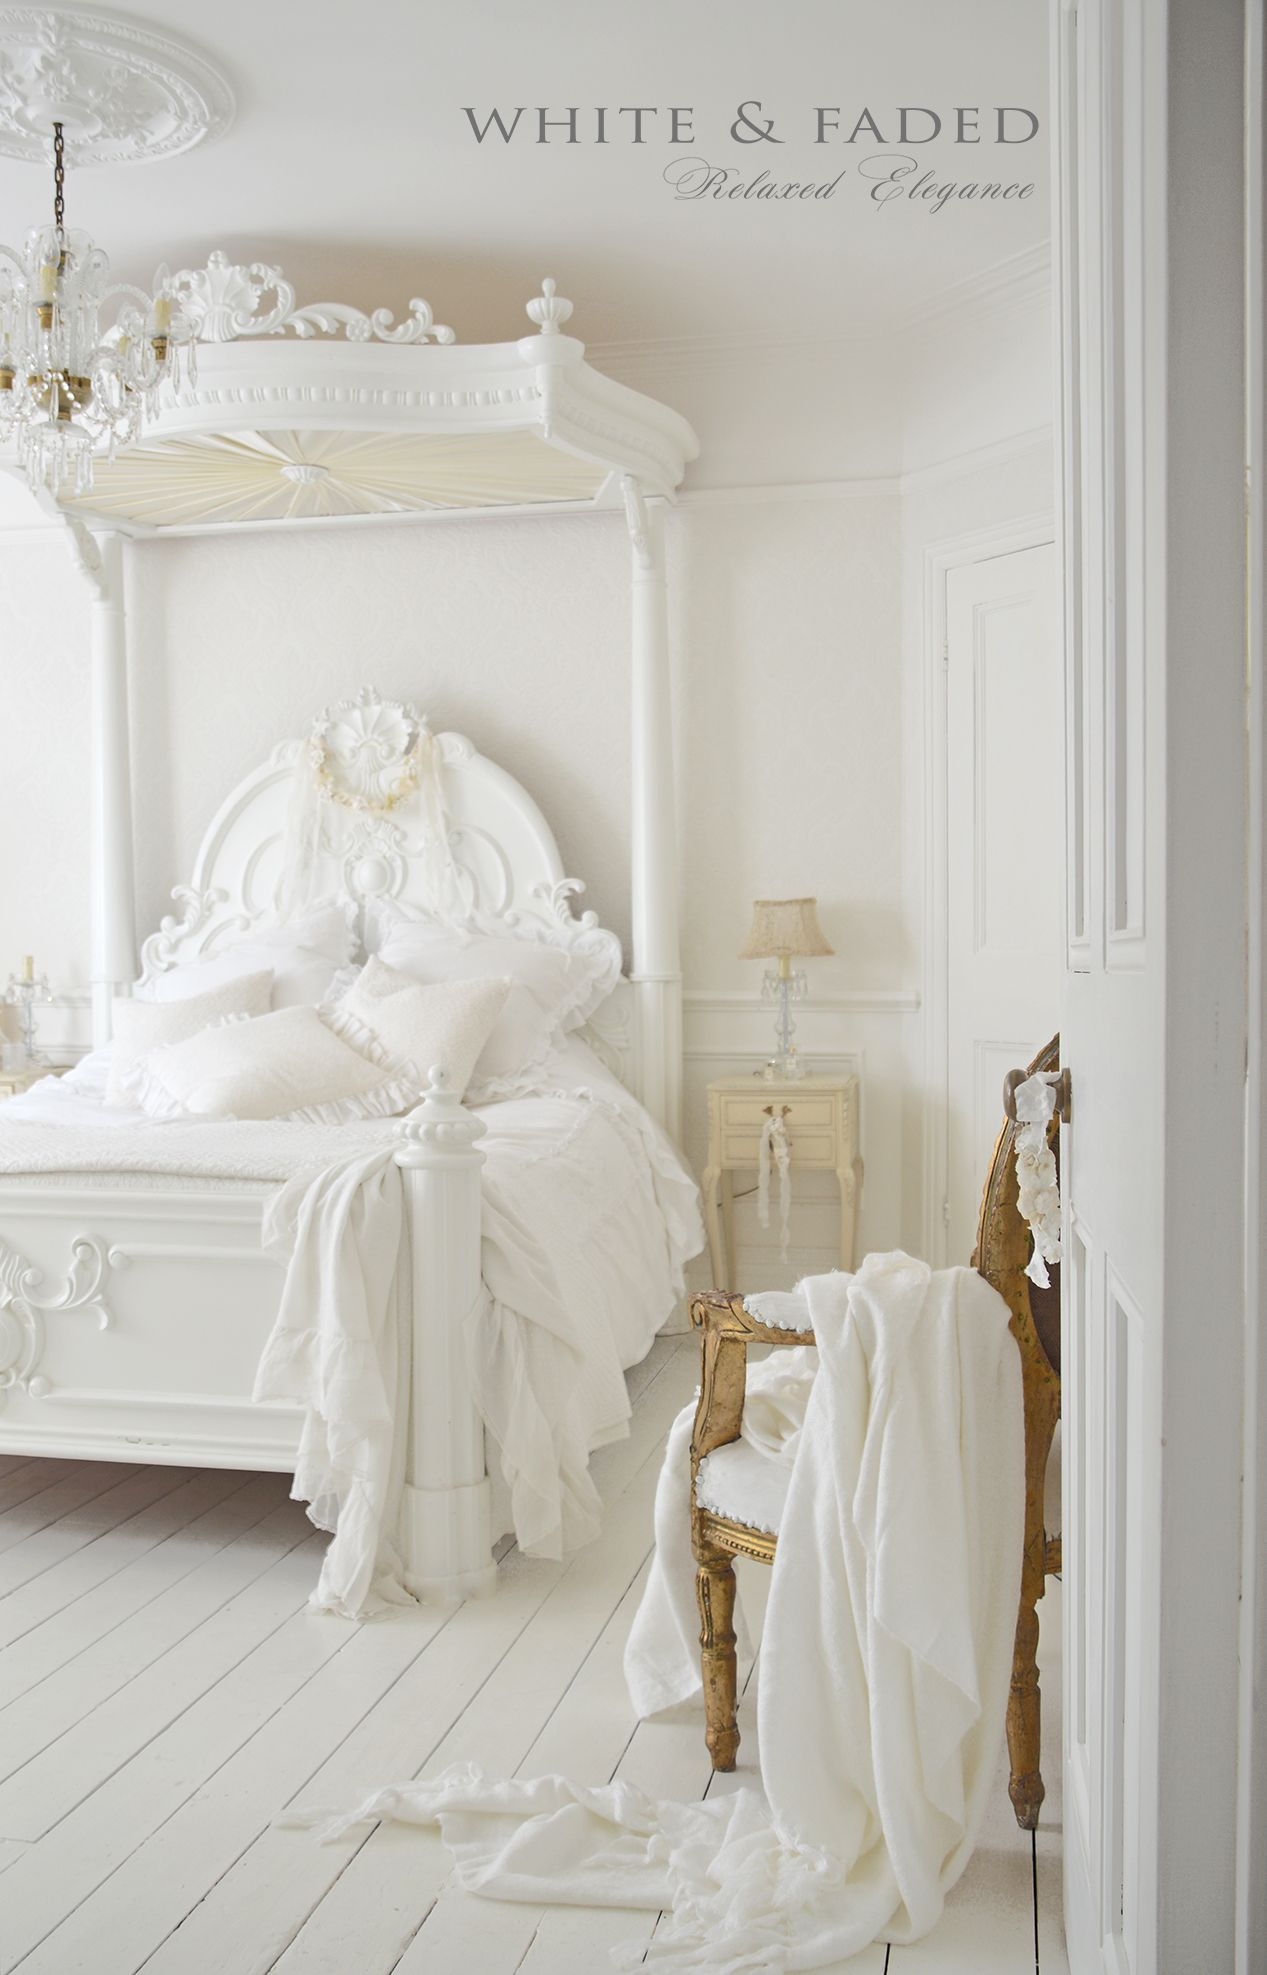 All White Dreamy Bedroom With Whitewashed Hardwood Floors, French  Antique Inspired Furniture And Plush, Light Linens.